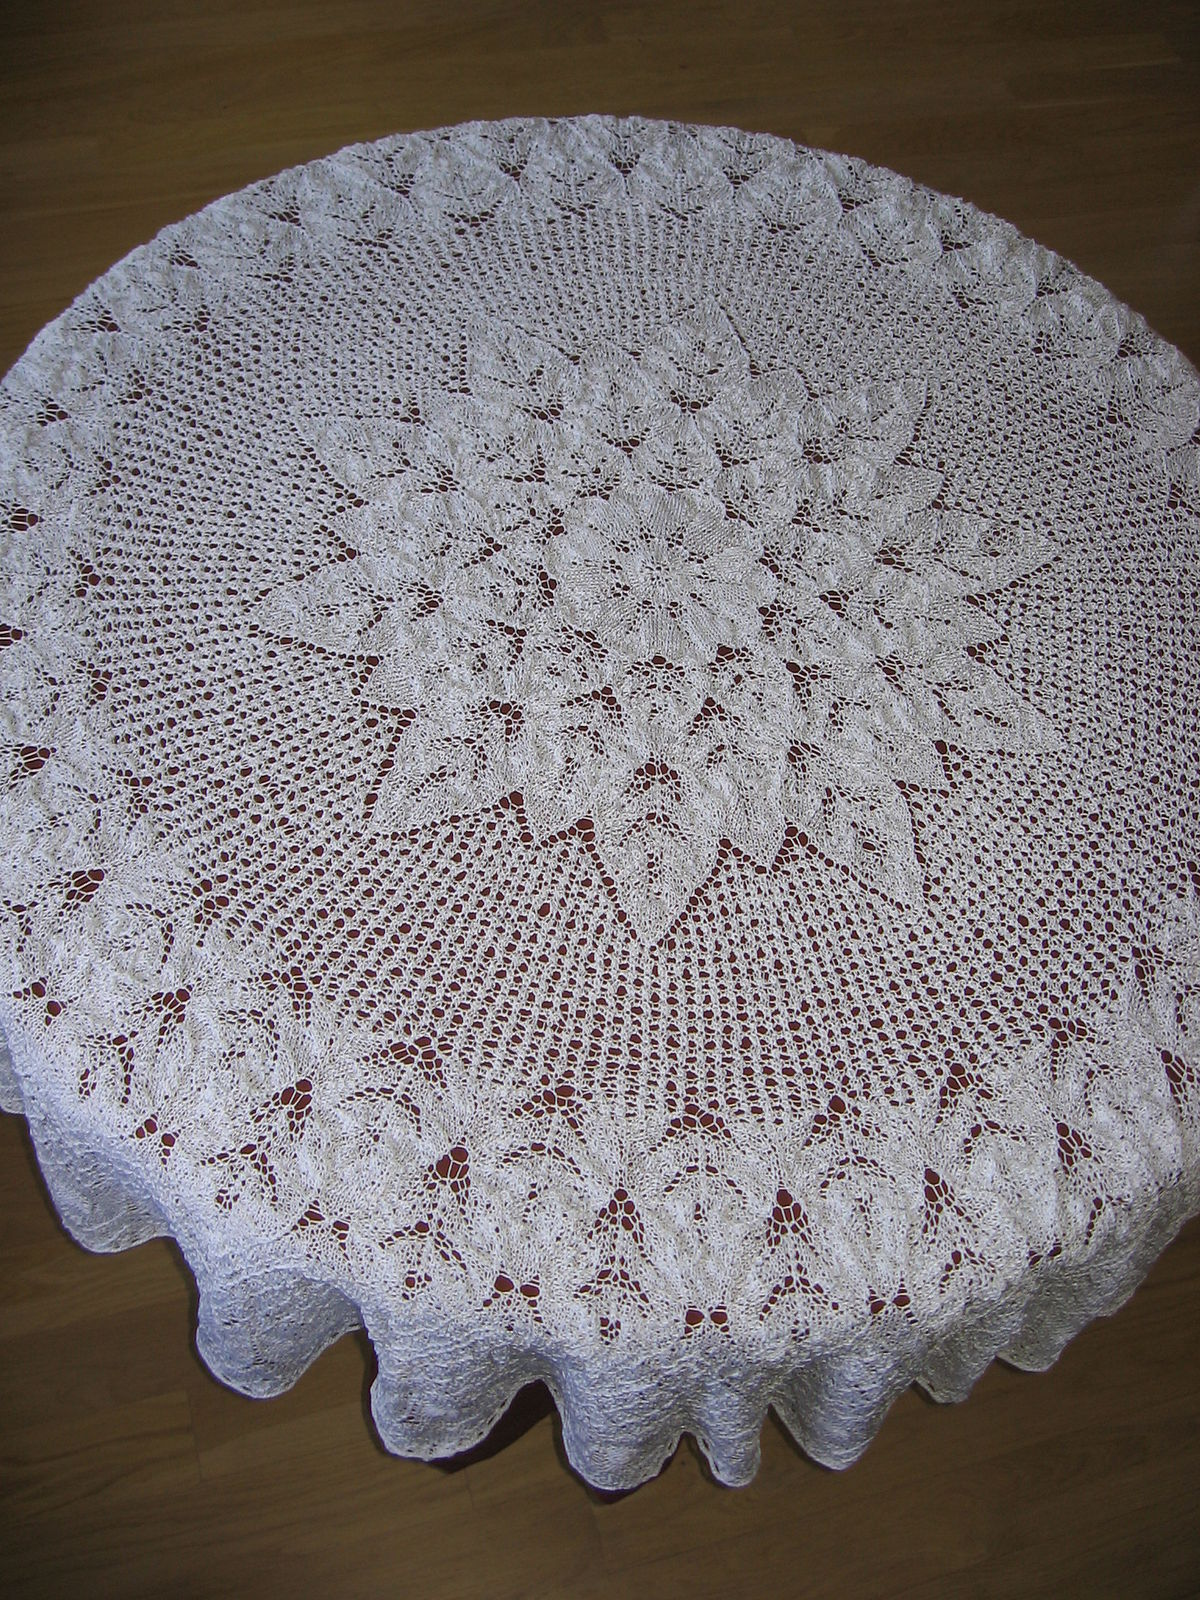 Lace knitting - Wikipedia